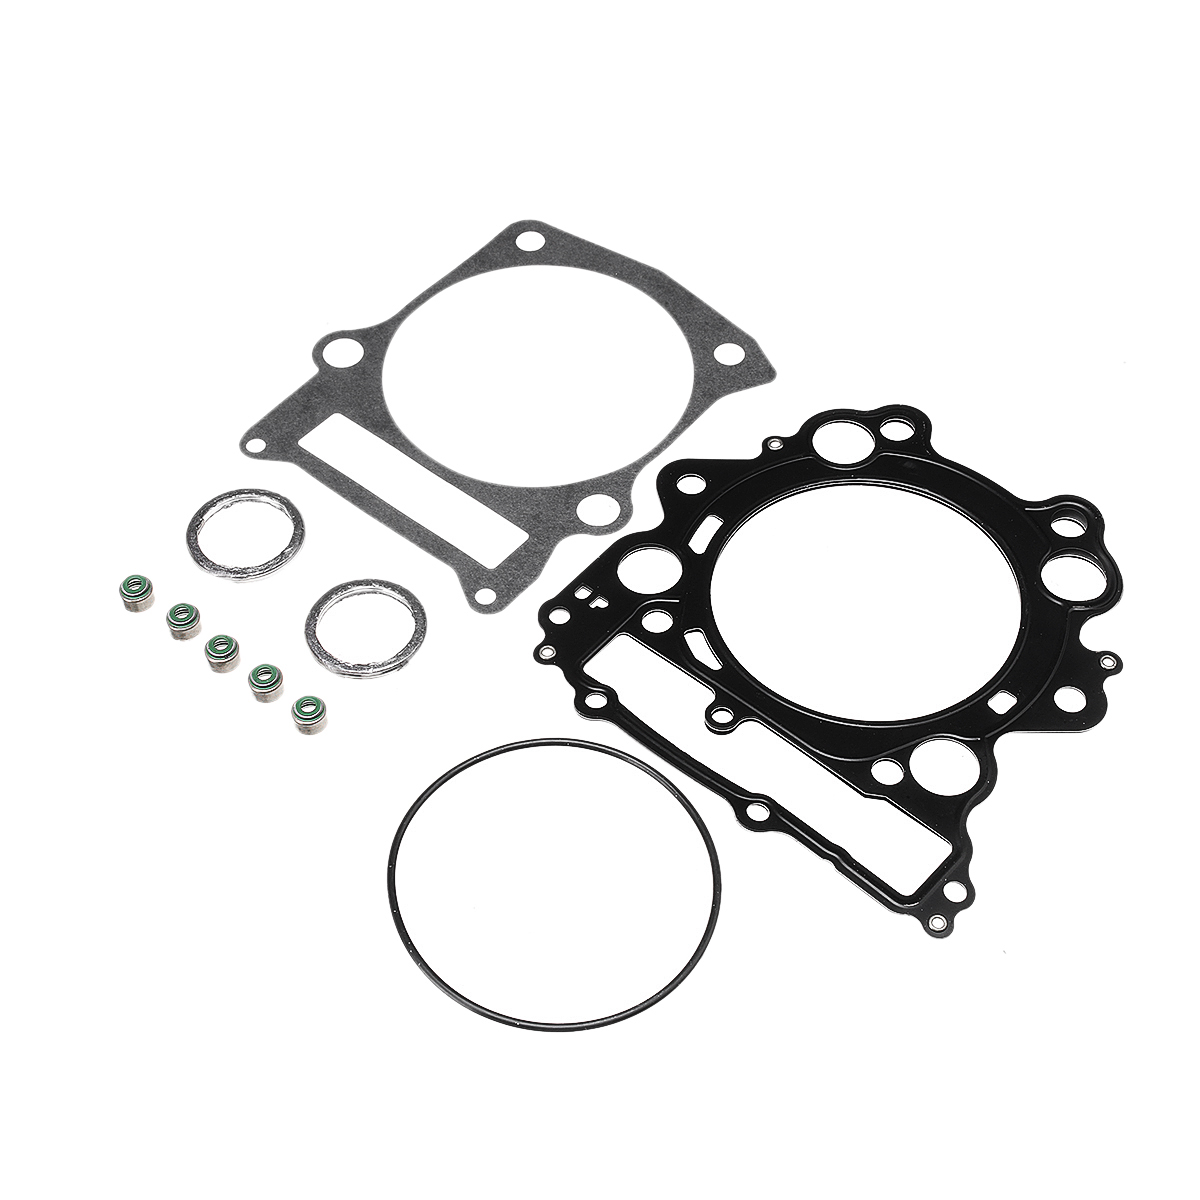 Tusk Top End Head Gasket Kit YAMAHA RAPTOR 700 700R Rhino 4x4 Auto Grizzly 4x4